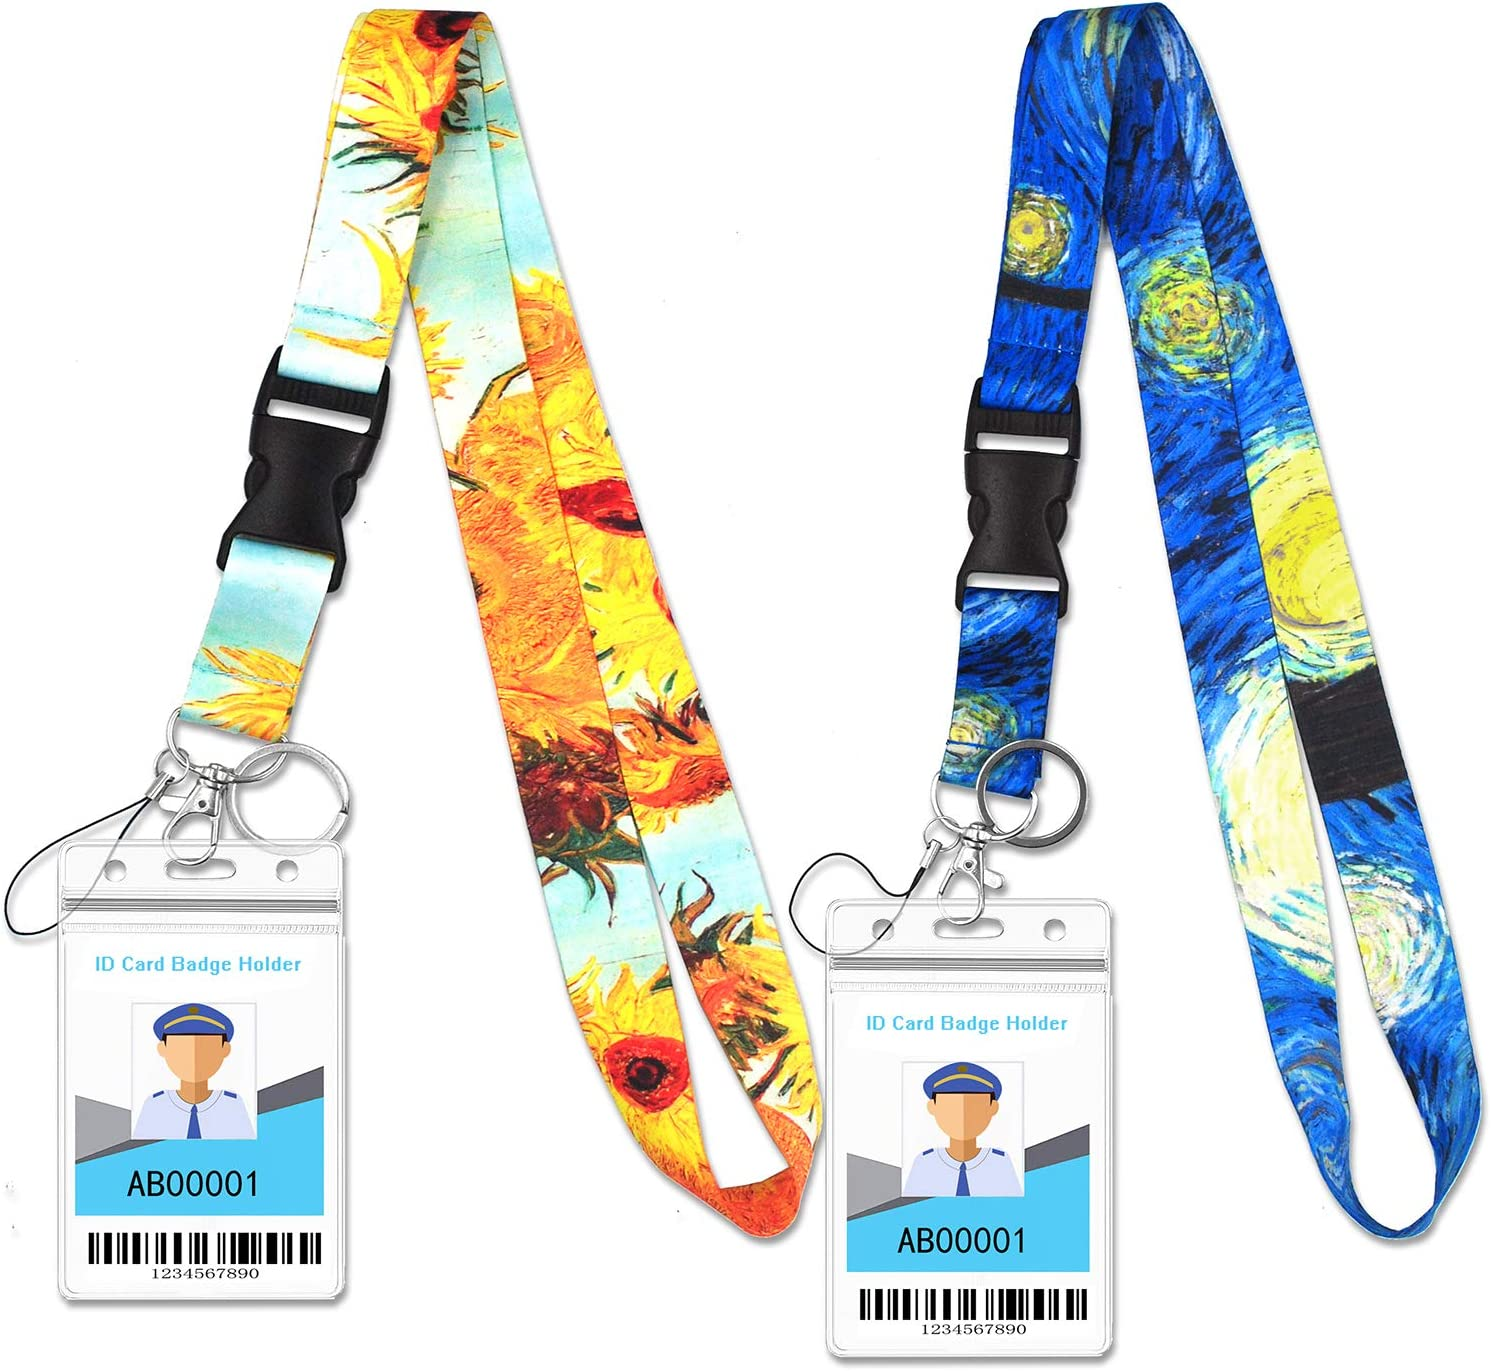 Cruise Lanyard with Waterproof ID Key Card Badge Holder Clip Essential Cruise Ship Accessories 2 Pack (Blue + Orange)